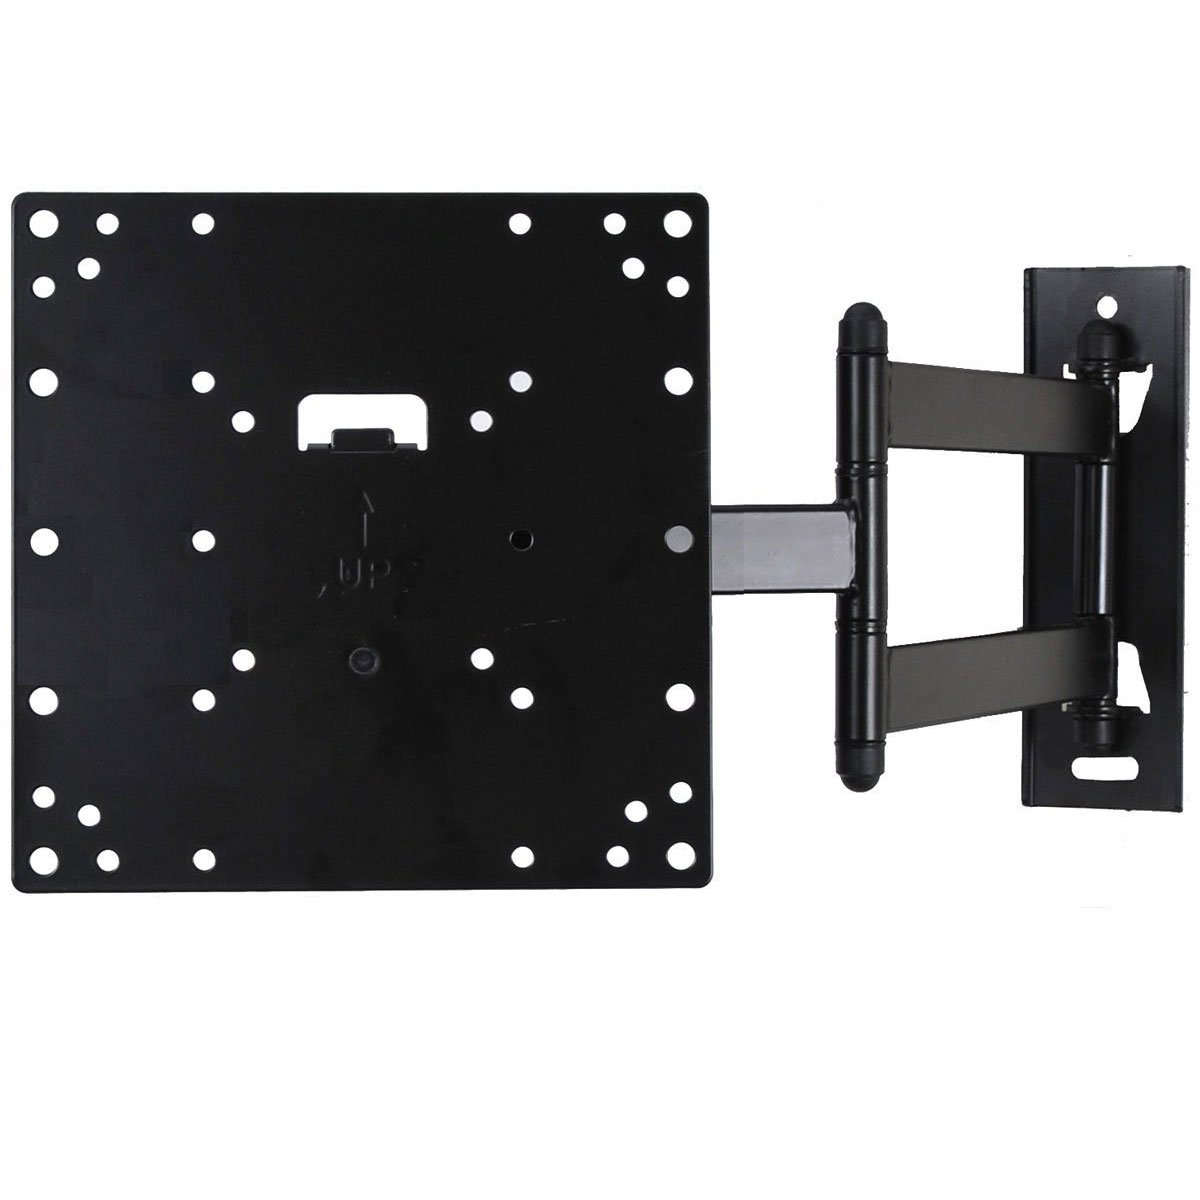 """VideoSecu Tilt Swivel Low profile 1.9"""" TV Wall Mount Bracket for most 27""""-47"""", some LED up to 50"""" with VESA 200x200 200x100 100x100 LCD LED Plasma TV or Monitor, Articulating arm 20"""" extension 3KB"""